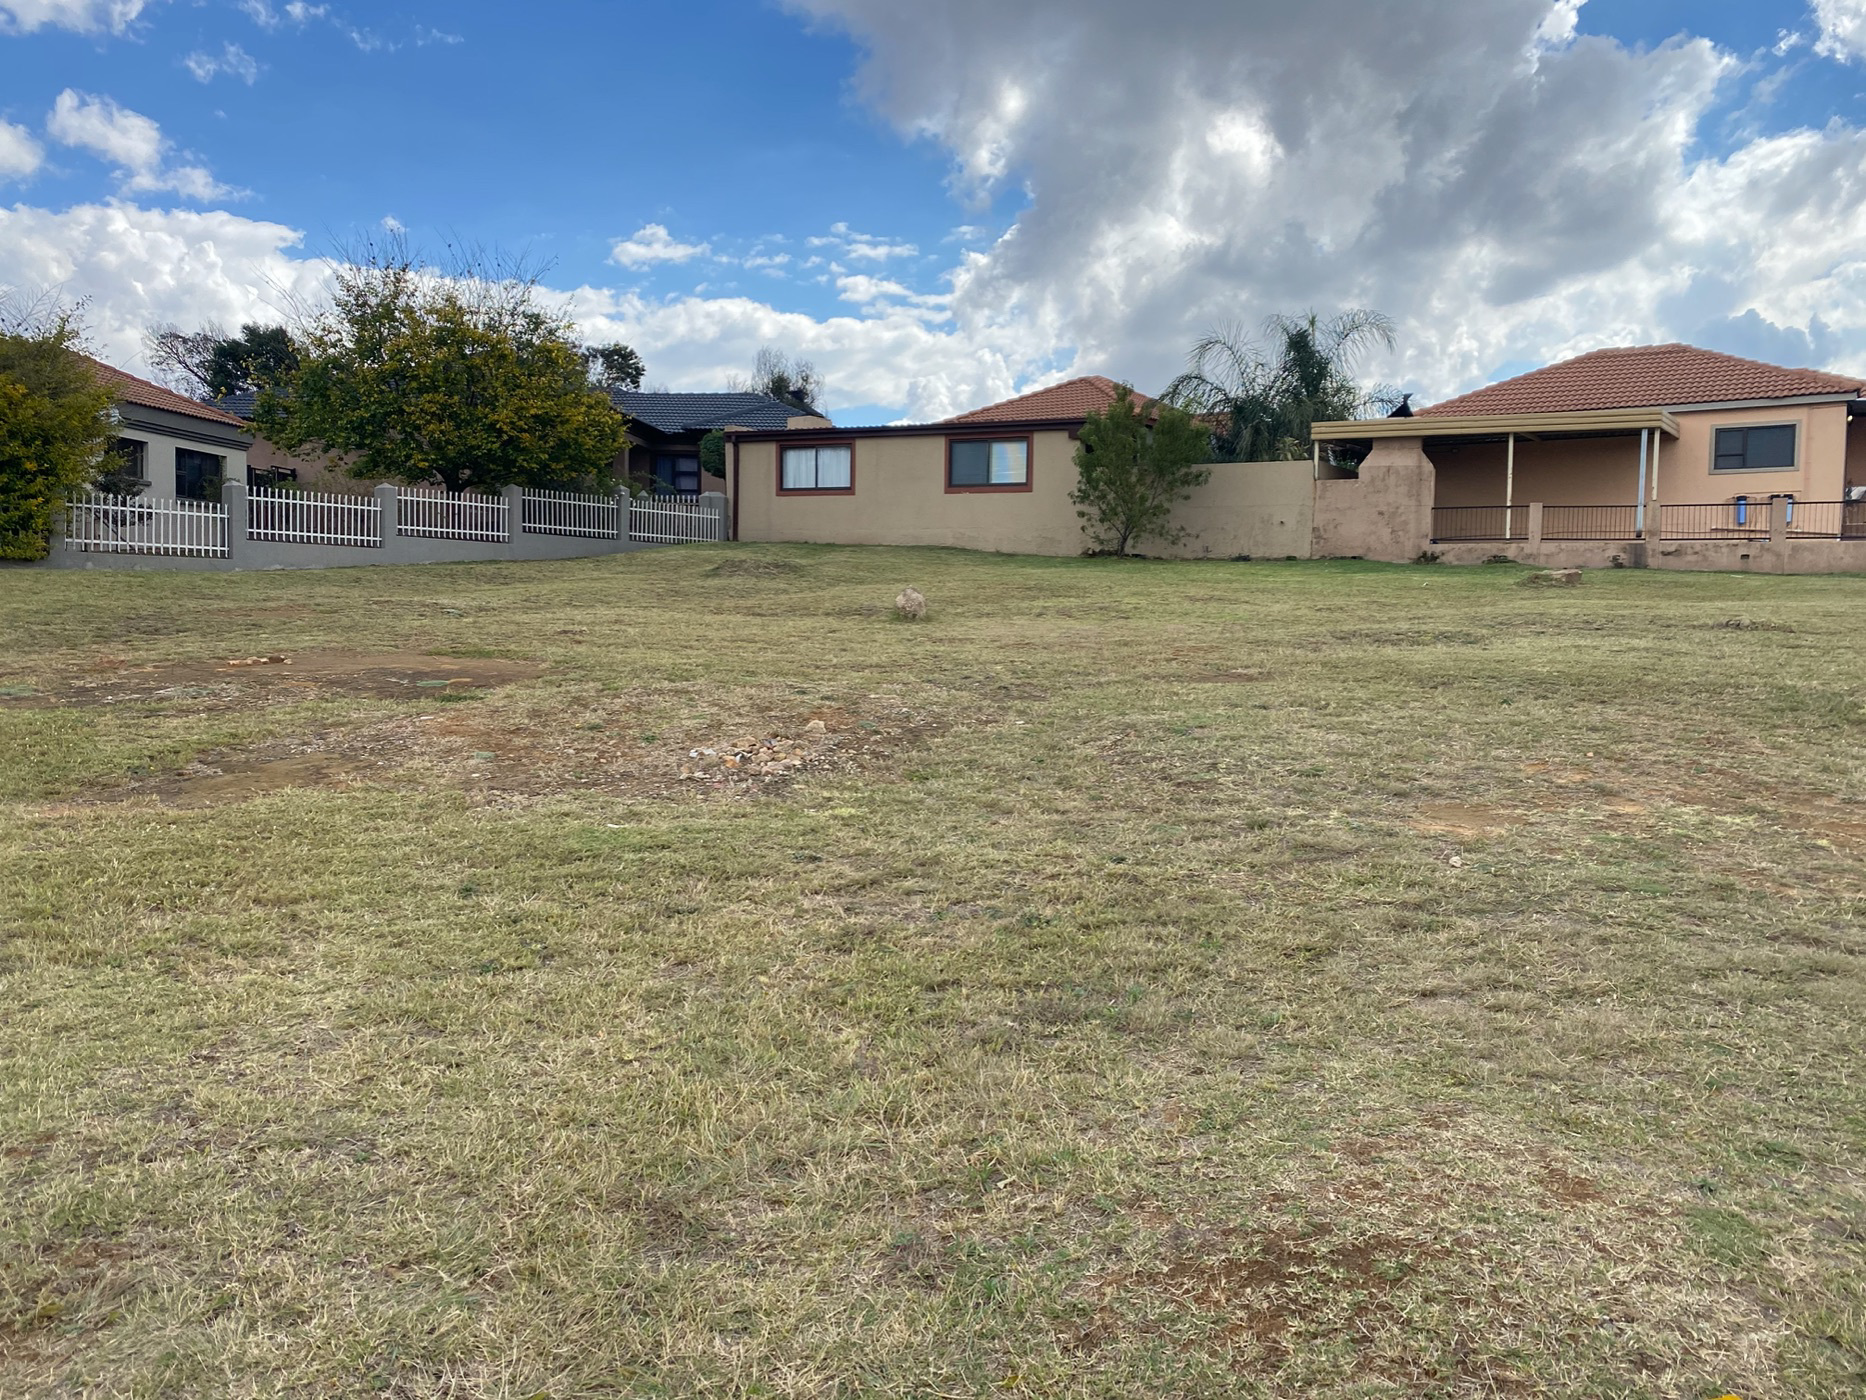 460 m² vacant land for sale in Kungwini Country Estate